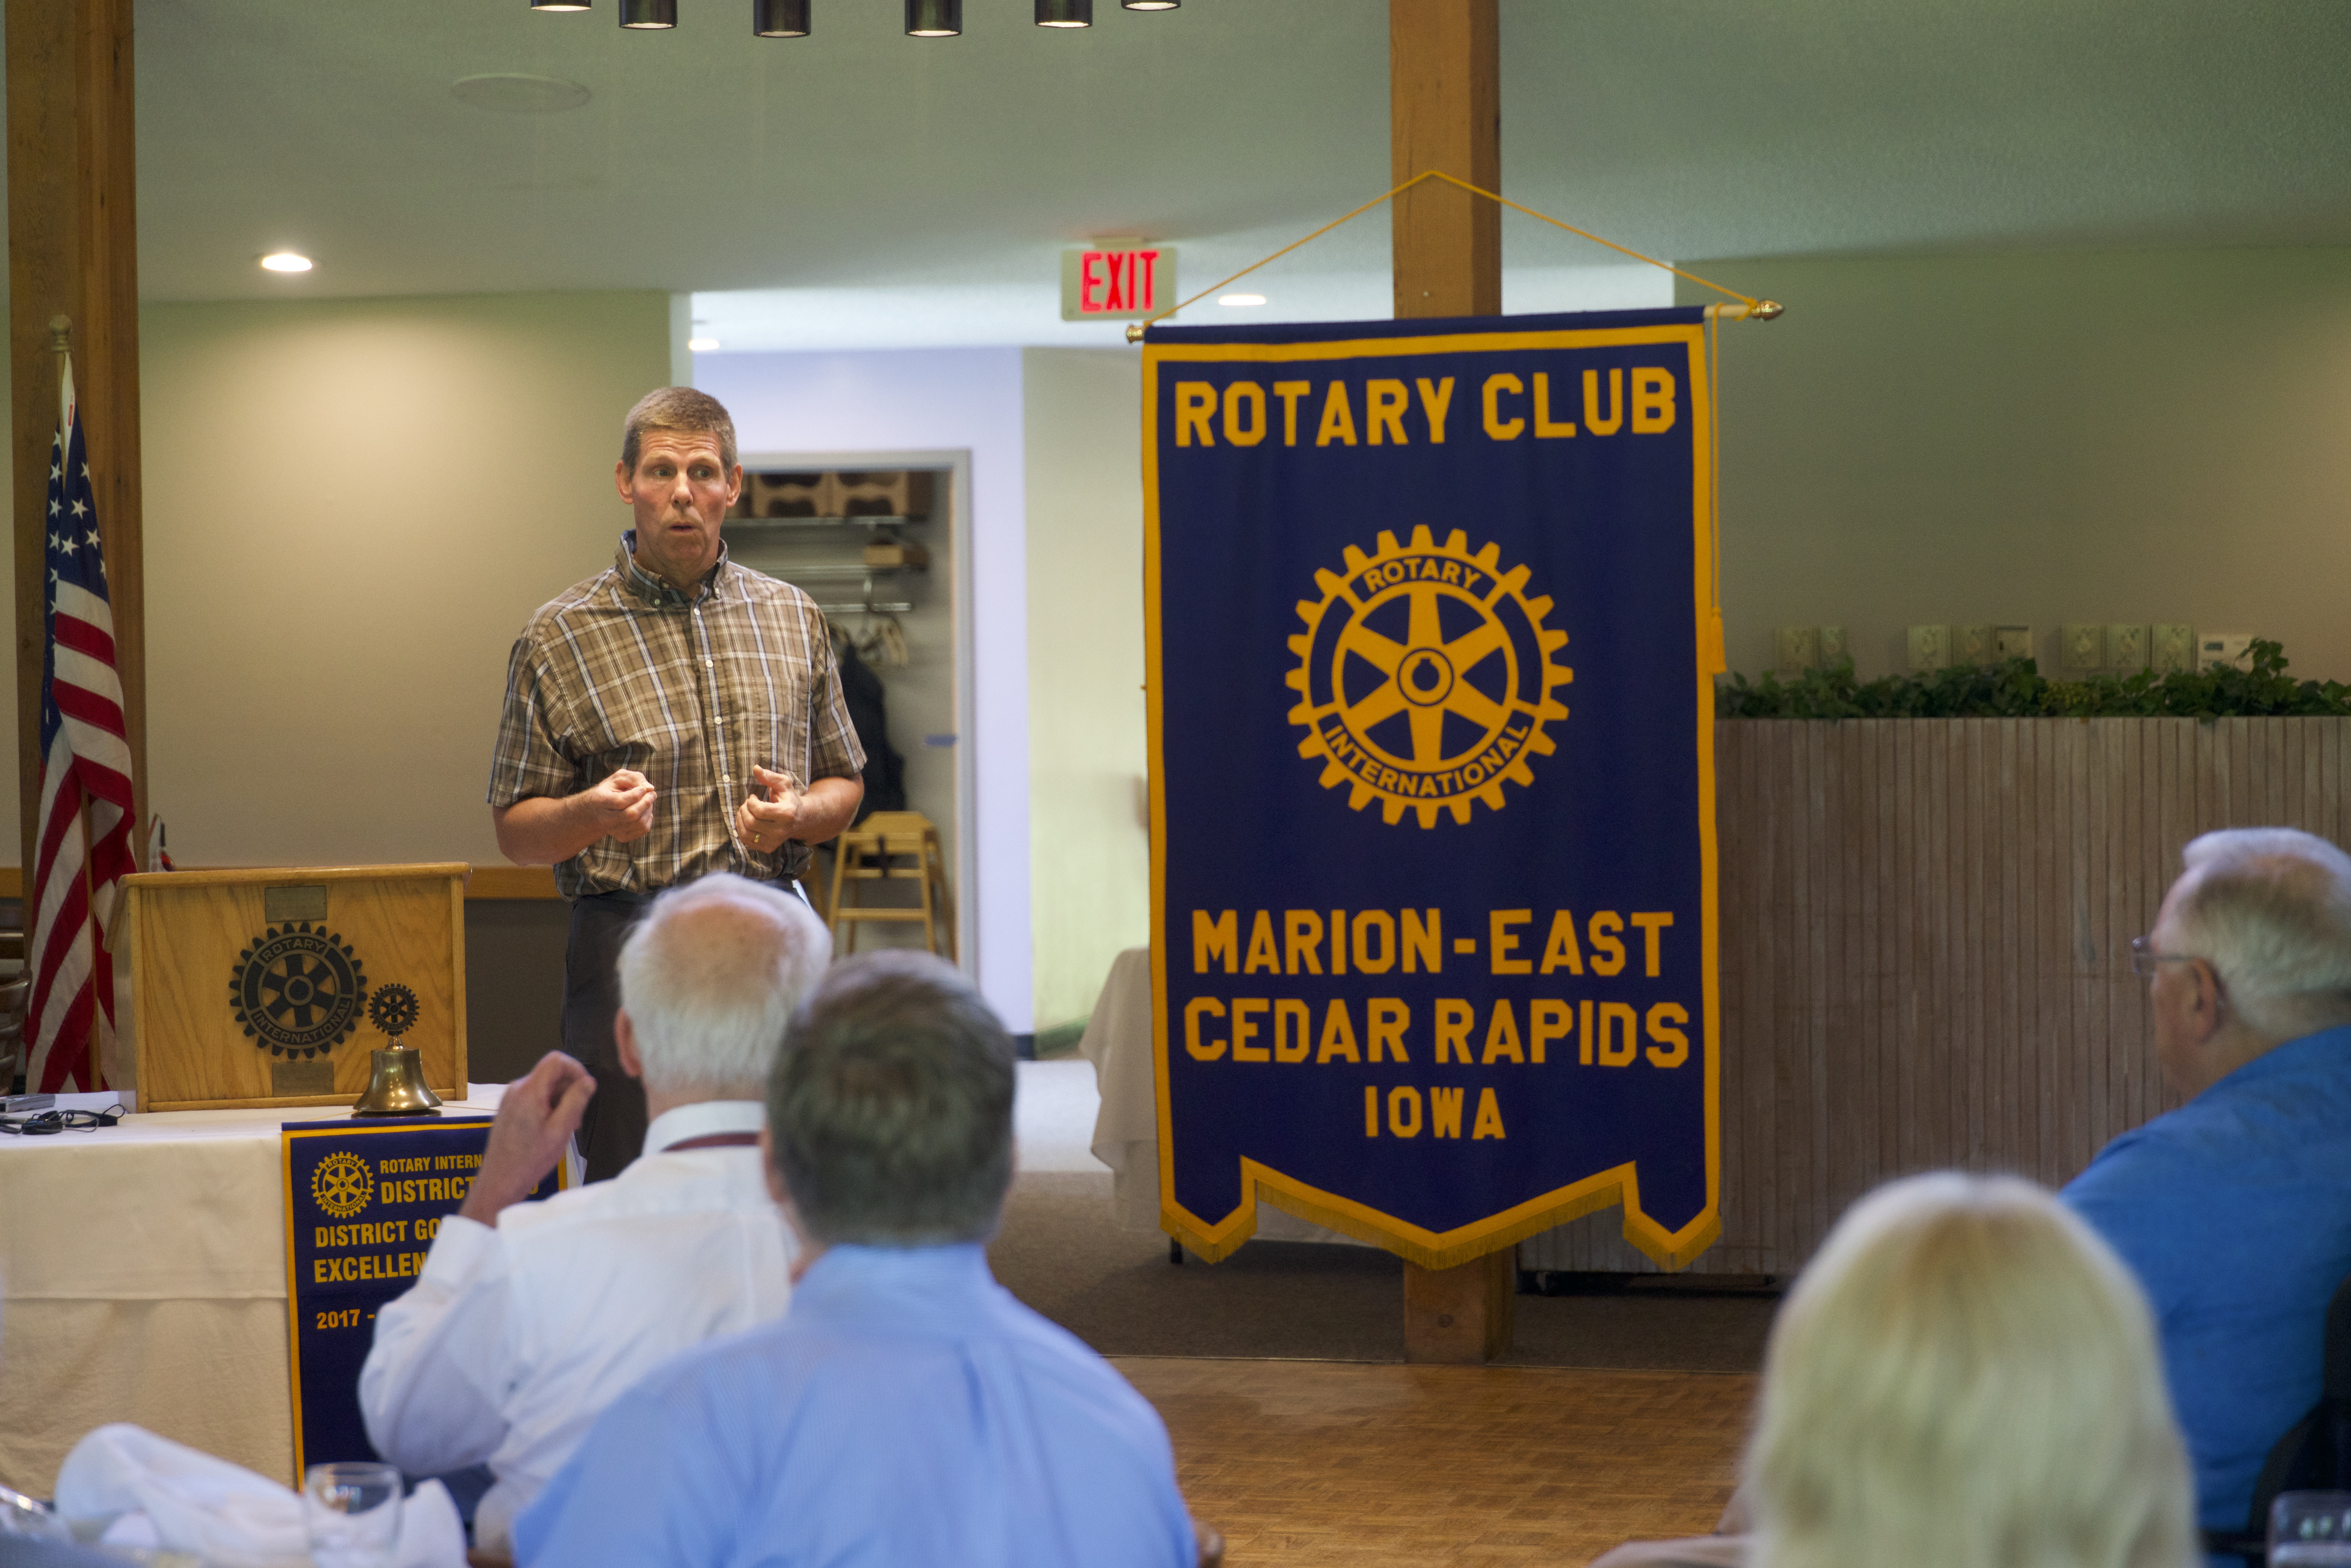 iowa geological survey at rotary meeting